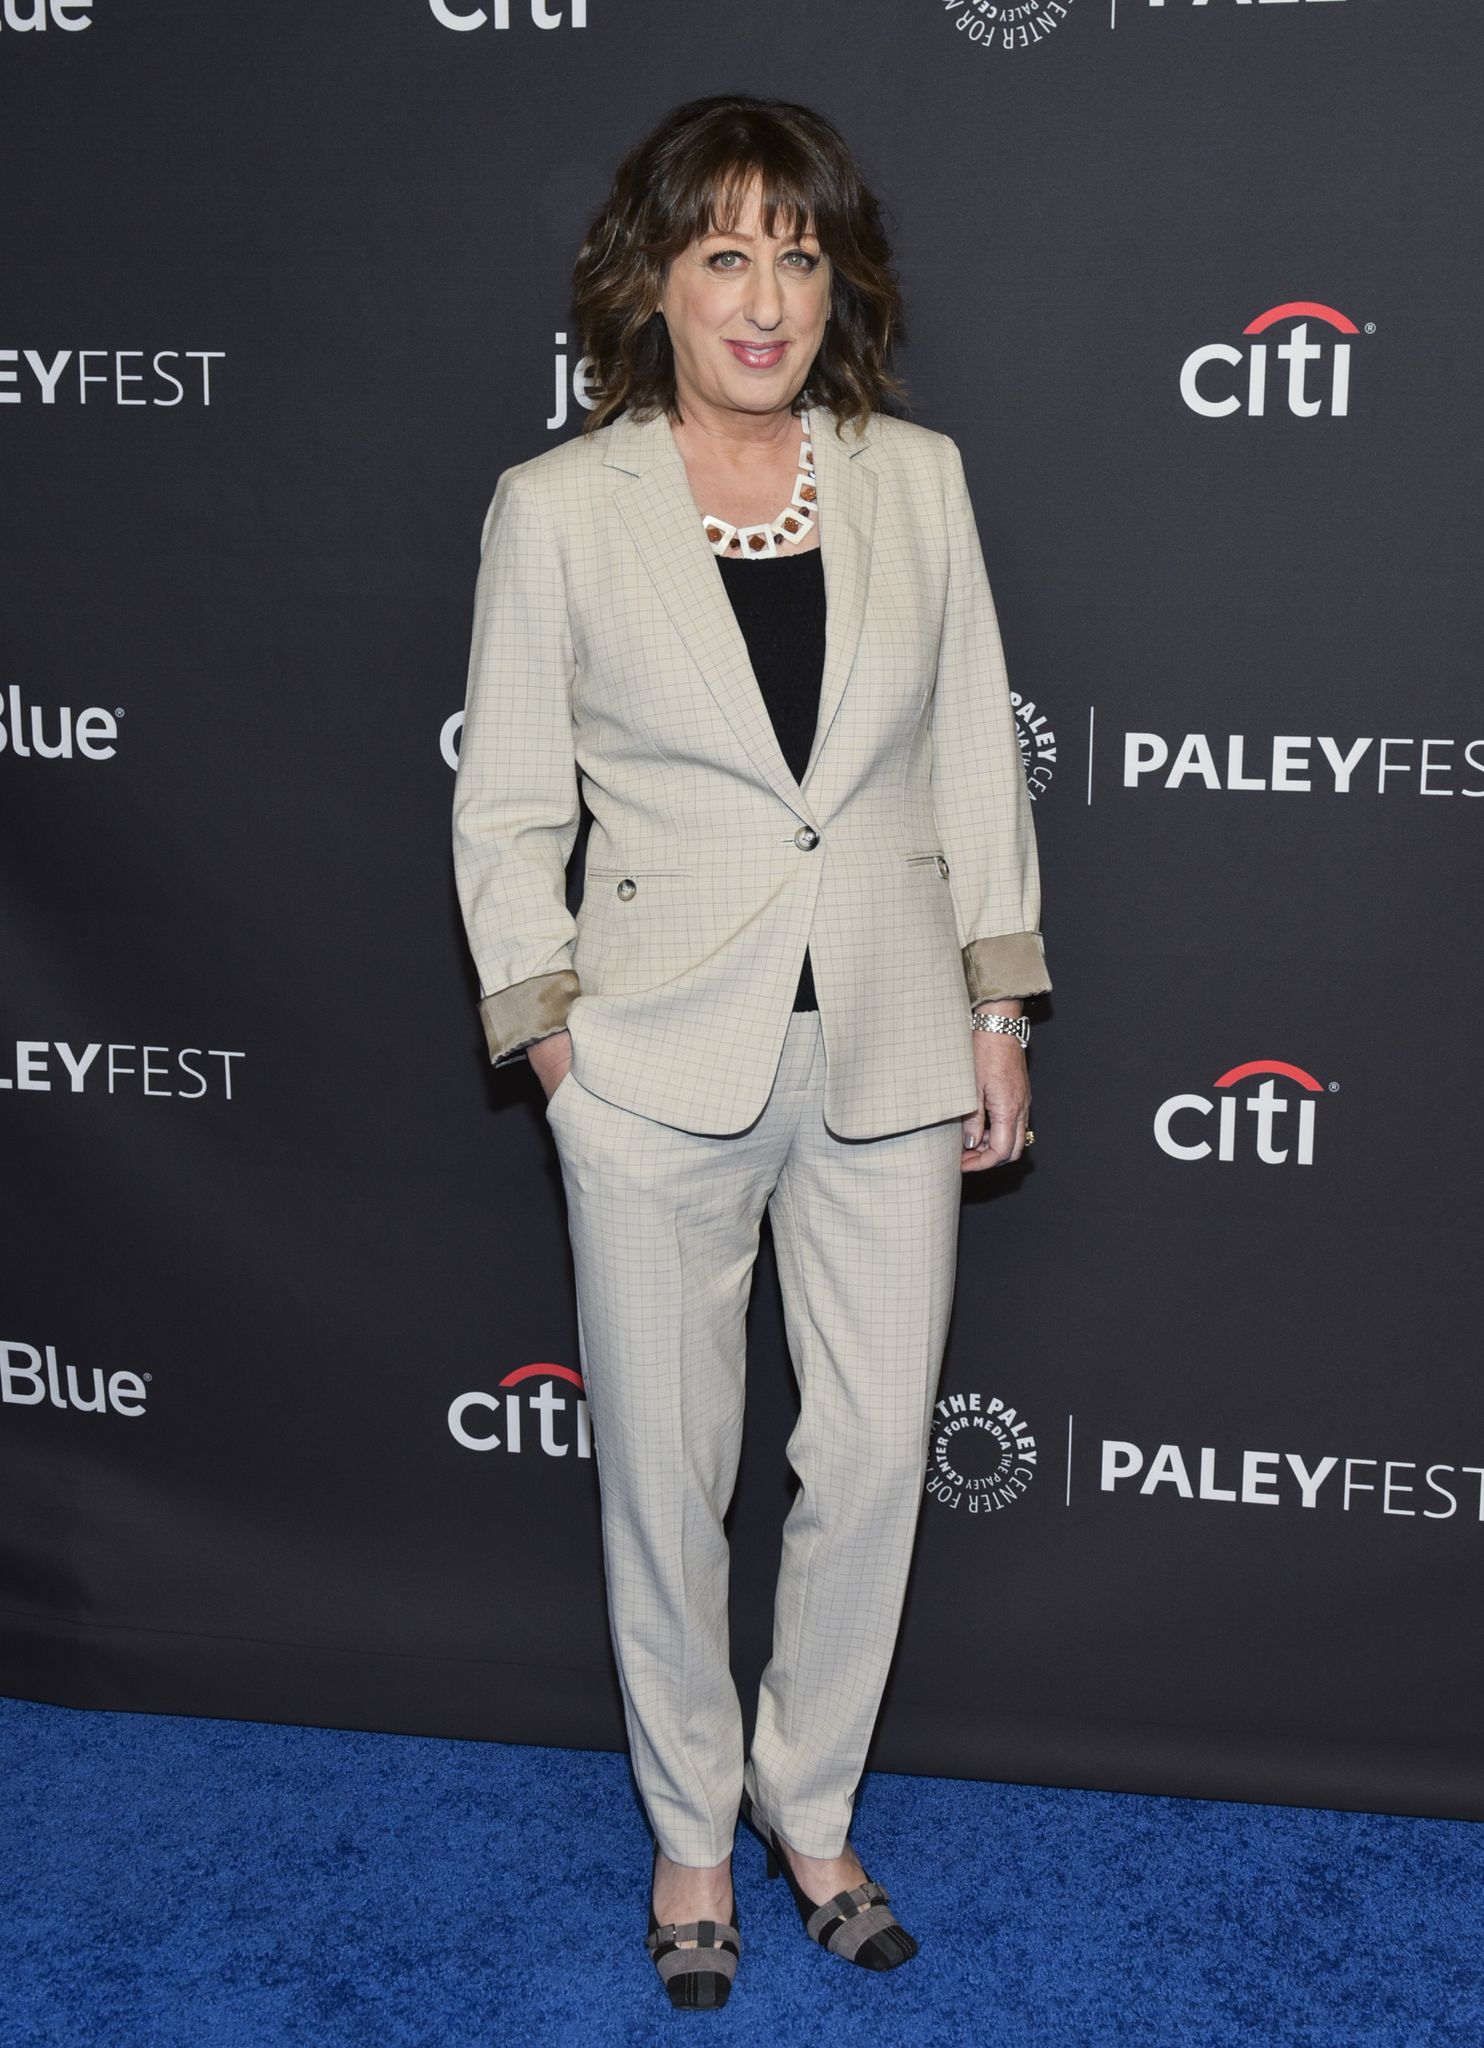 Beth Hall at the 2018 PaleyFest Los Angeles in 2018 in Hollywood, California | Source: Getty Images